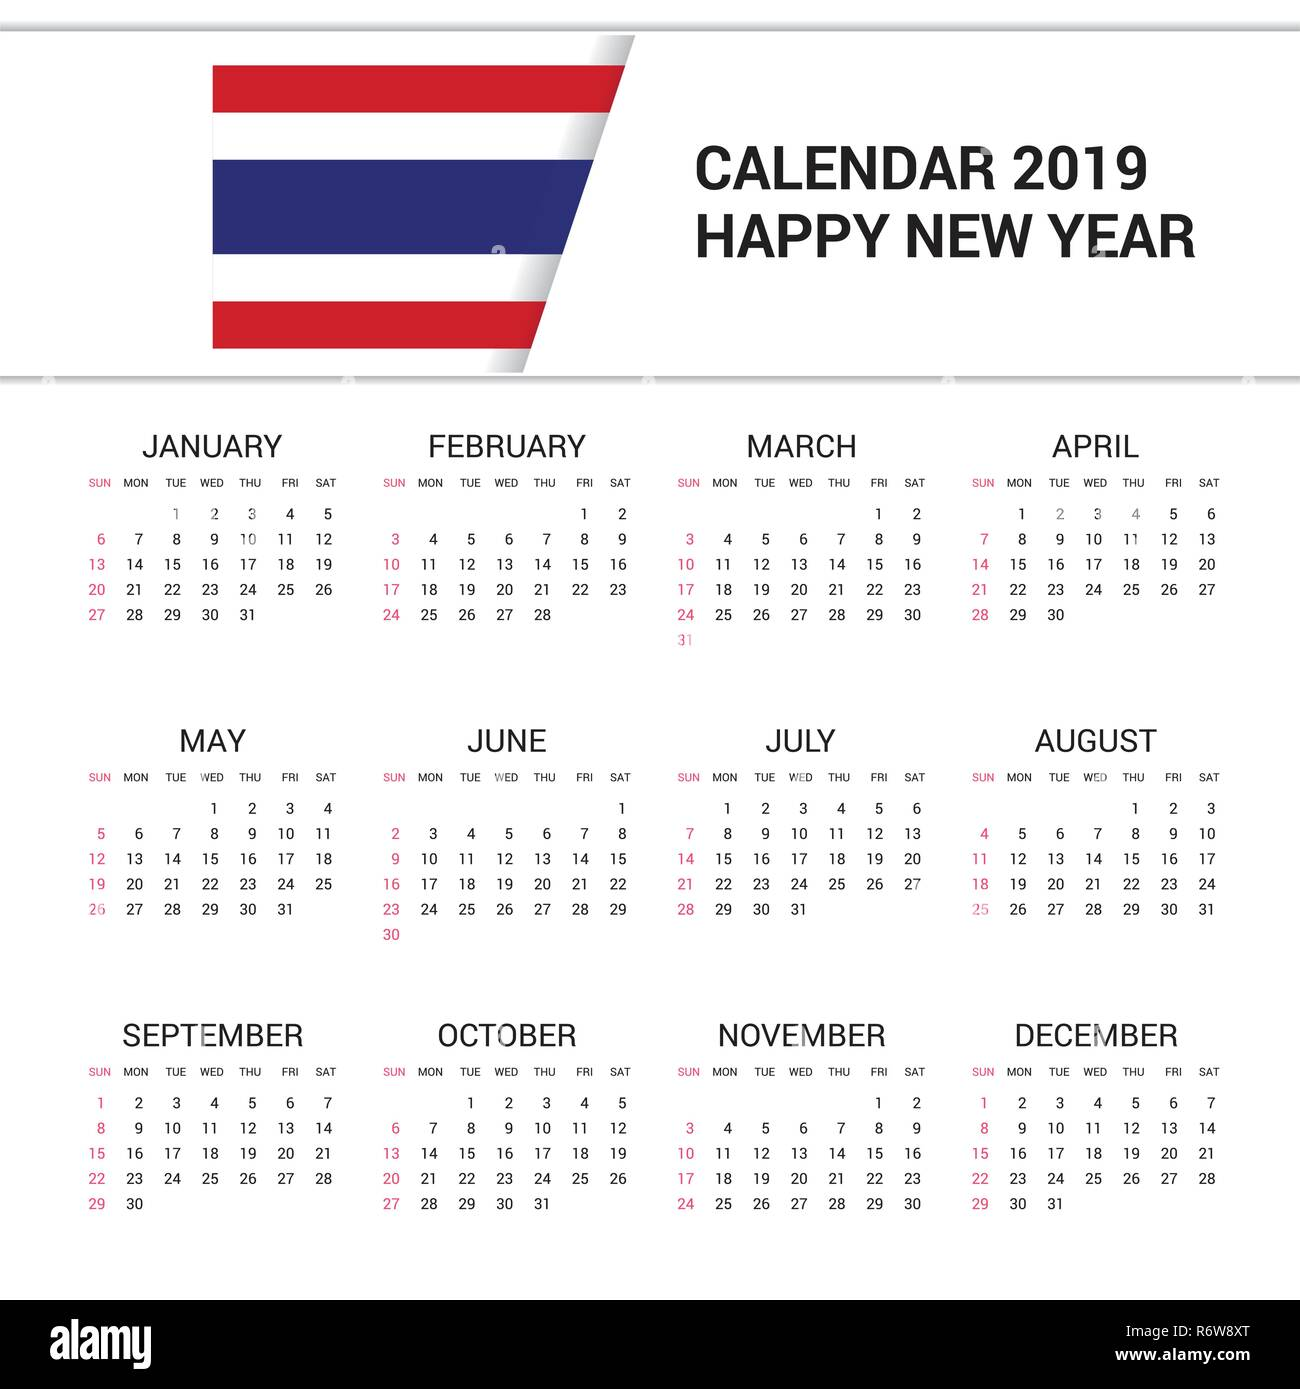 Calendar Thailand 2019 Calendar 2019 Thailand Flag background. English language Stock